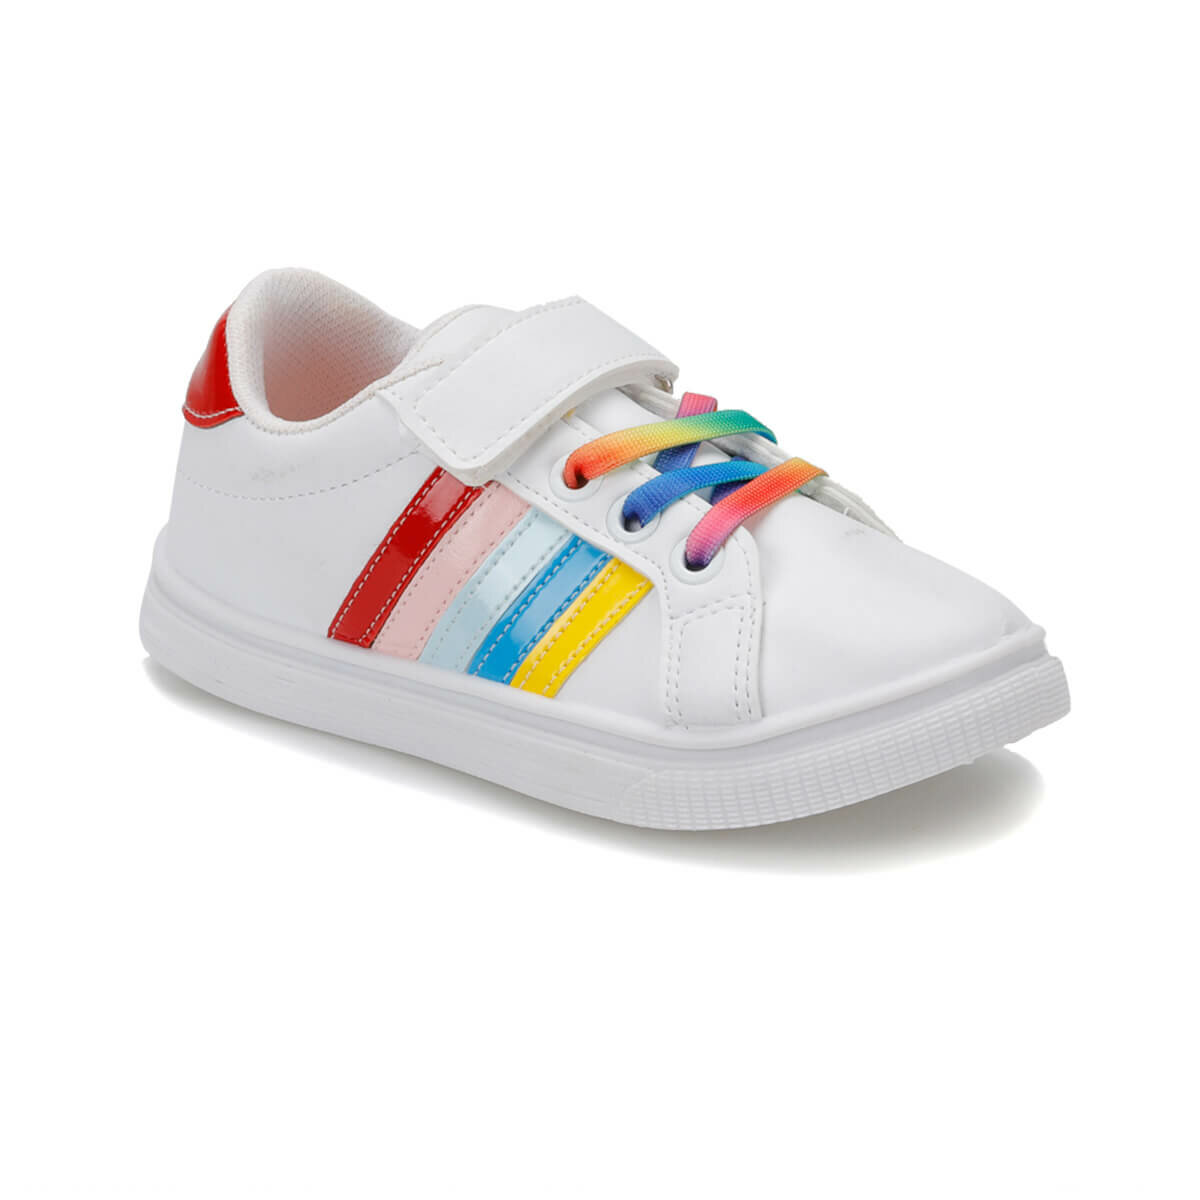 FLO FUNNY F White Female Child Sneaker Shoes I-Cool